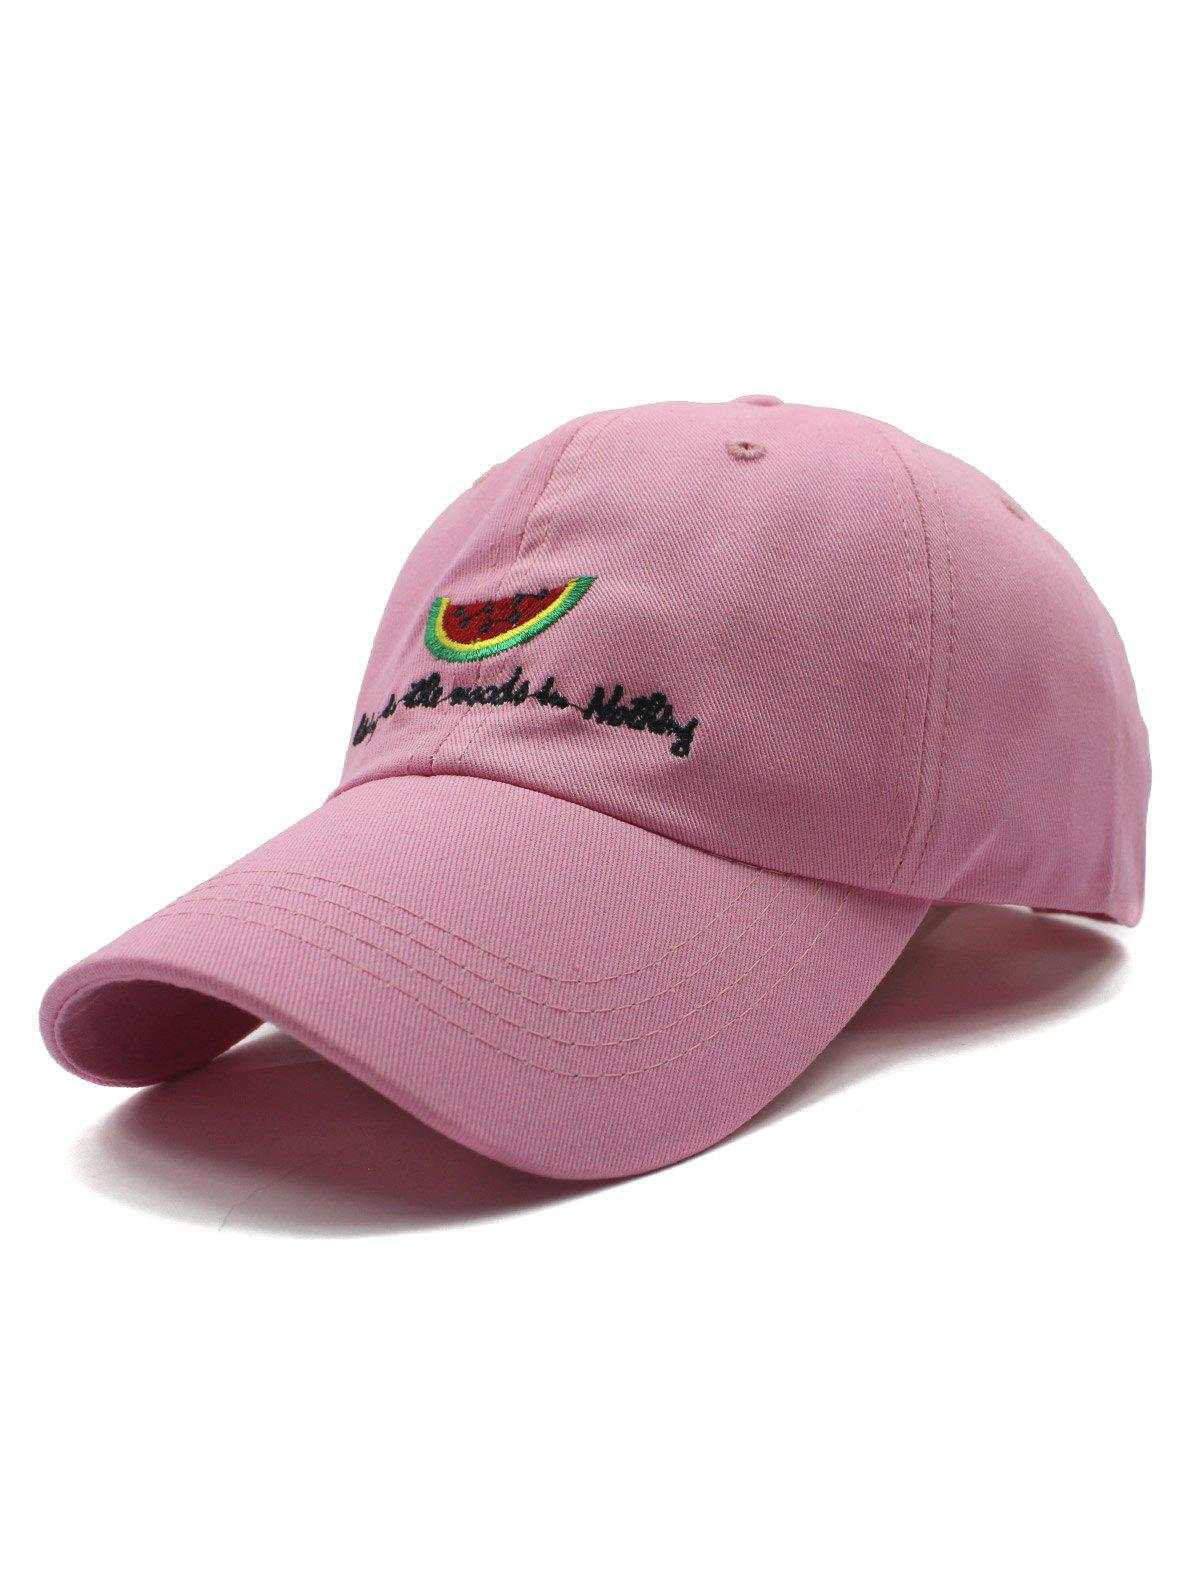 Stylish Watermelon and Letter Embroidery Baseball Hat - PINK